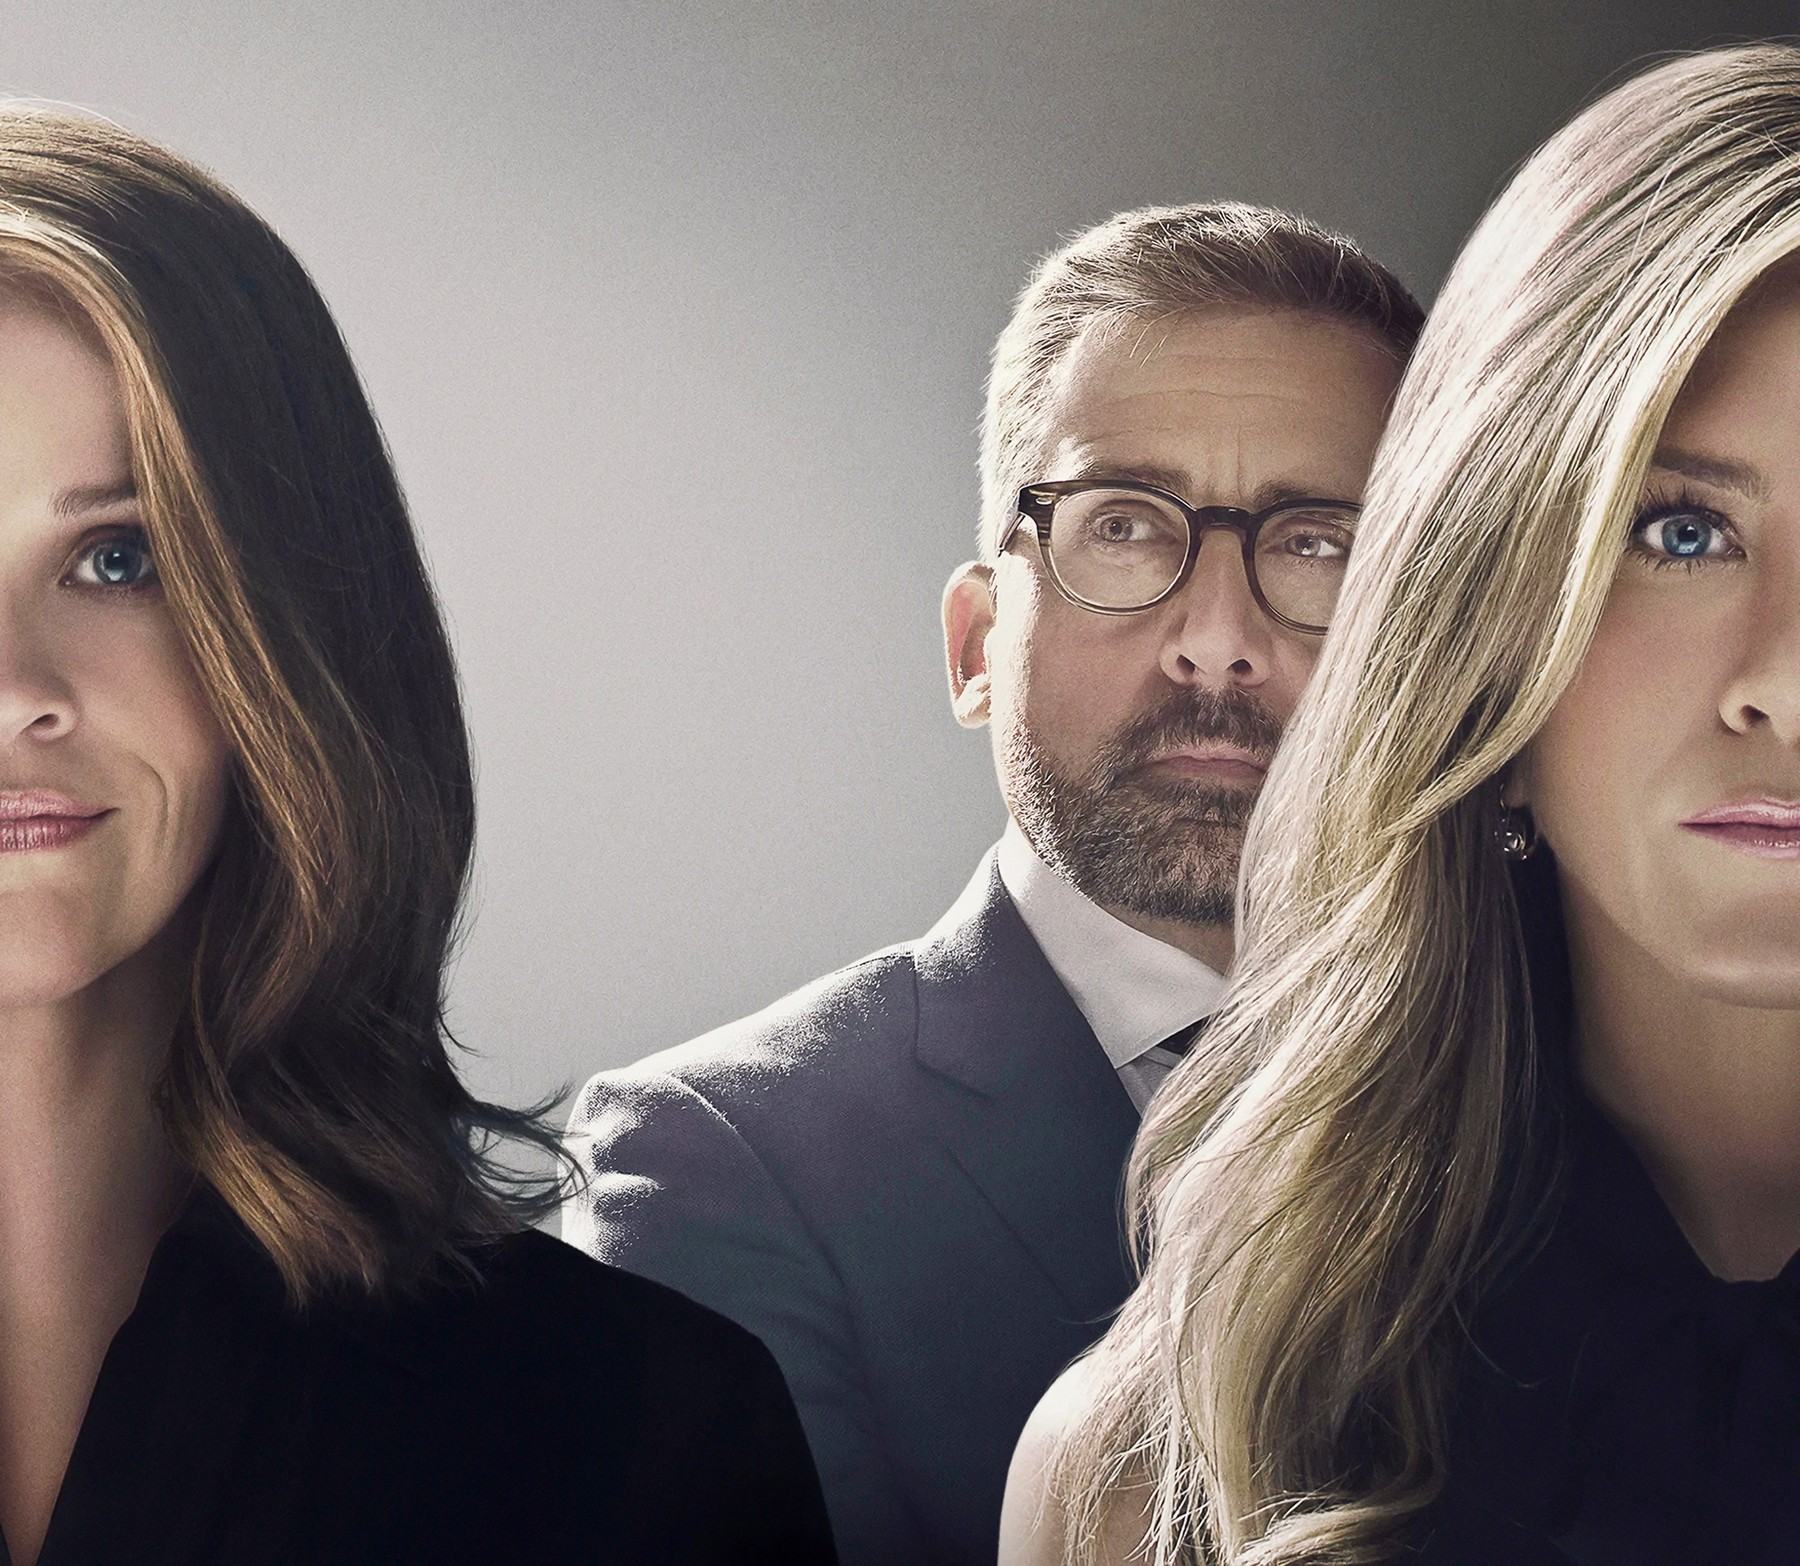 USA. Reese Witherspoon ,  Jennifer Aniston and Steve Carell in the ©Apple TV new series: The Morning Show (2019) .  Plot: an inside look at the lives of the people who help America wake up in the morning, exploring the unique challenges faced by the women (and men) who carry out this daily televised ritual, Image: 482229462, License: Rights-managed, Restrictions: Supplied by Landmark Media. Editorial Only. Landmark Media is not the copyright owner of these Film or TV stills but provides a service only for recognised Media outlets., Model Release: no, Credit line: Supplied by LMK / Landmark / Profimedia